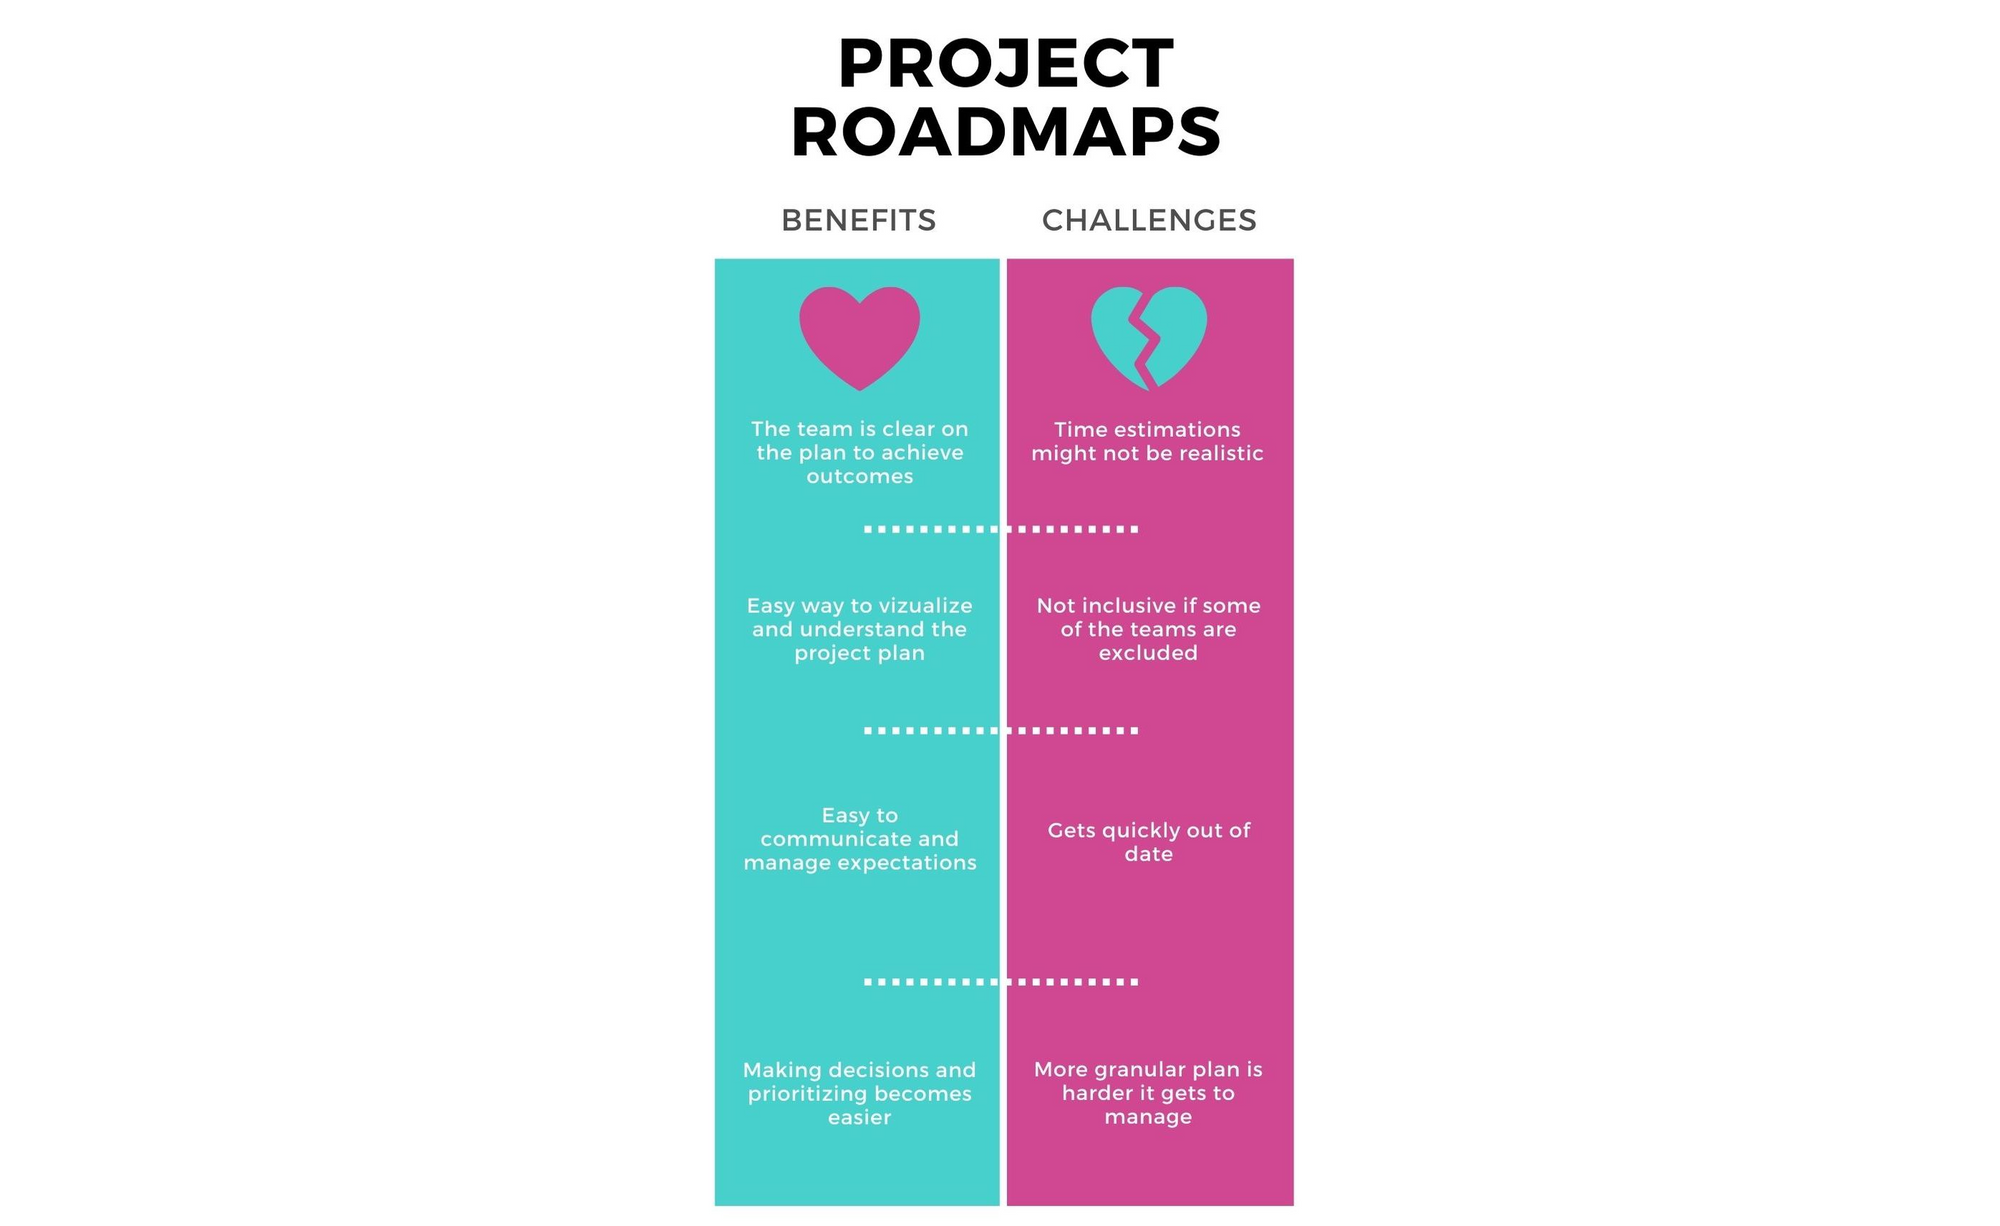 Project roadmaps: benefits and challenges